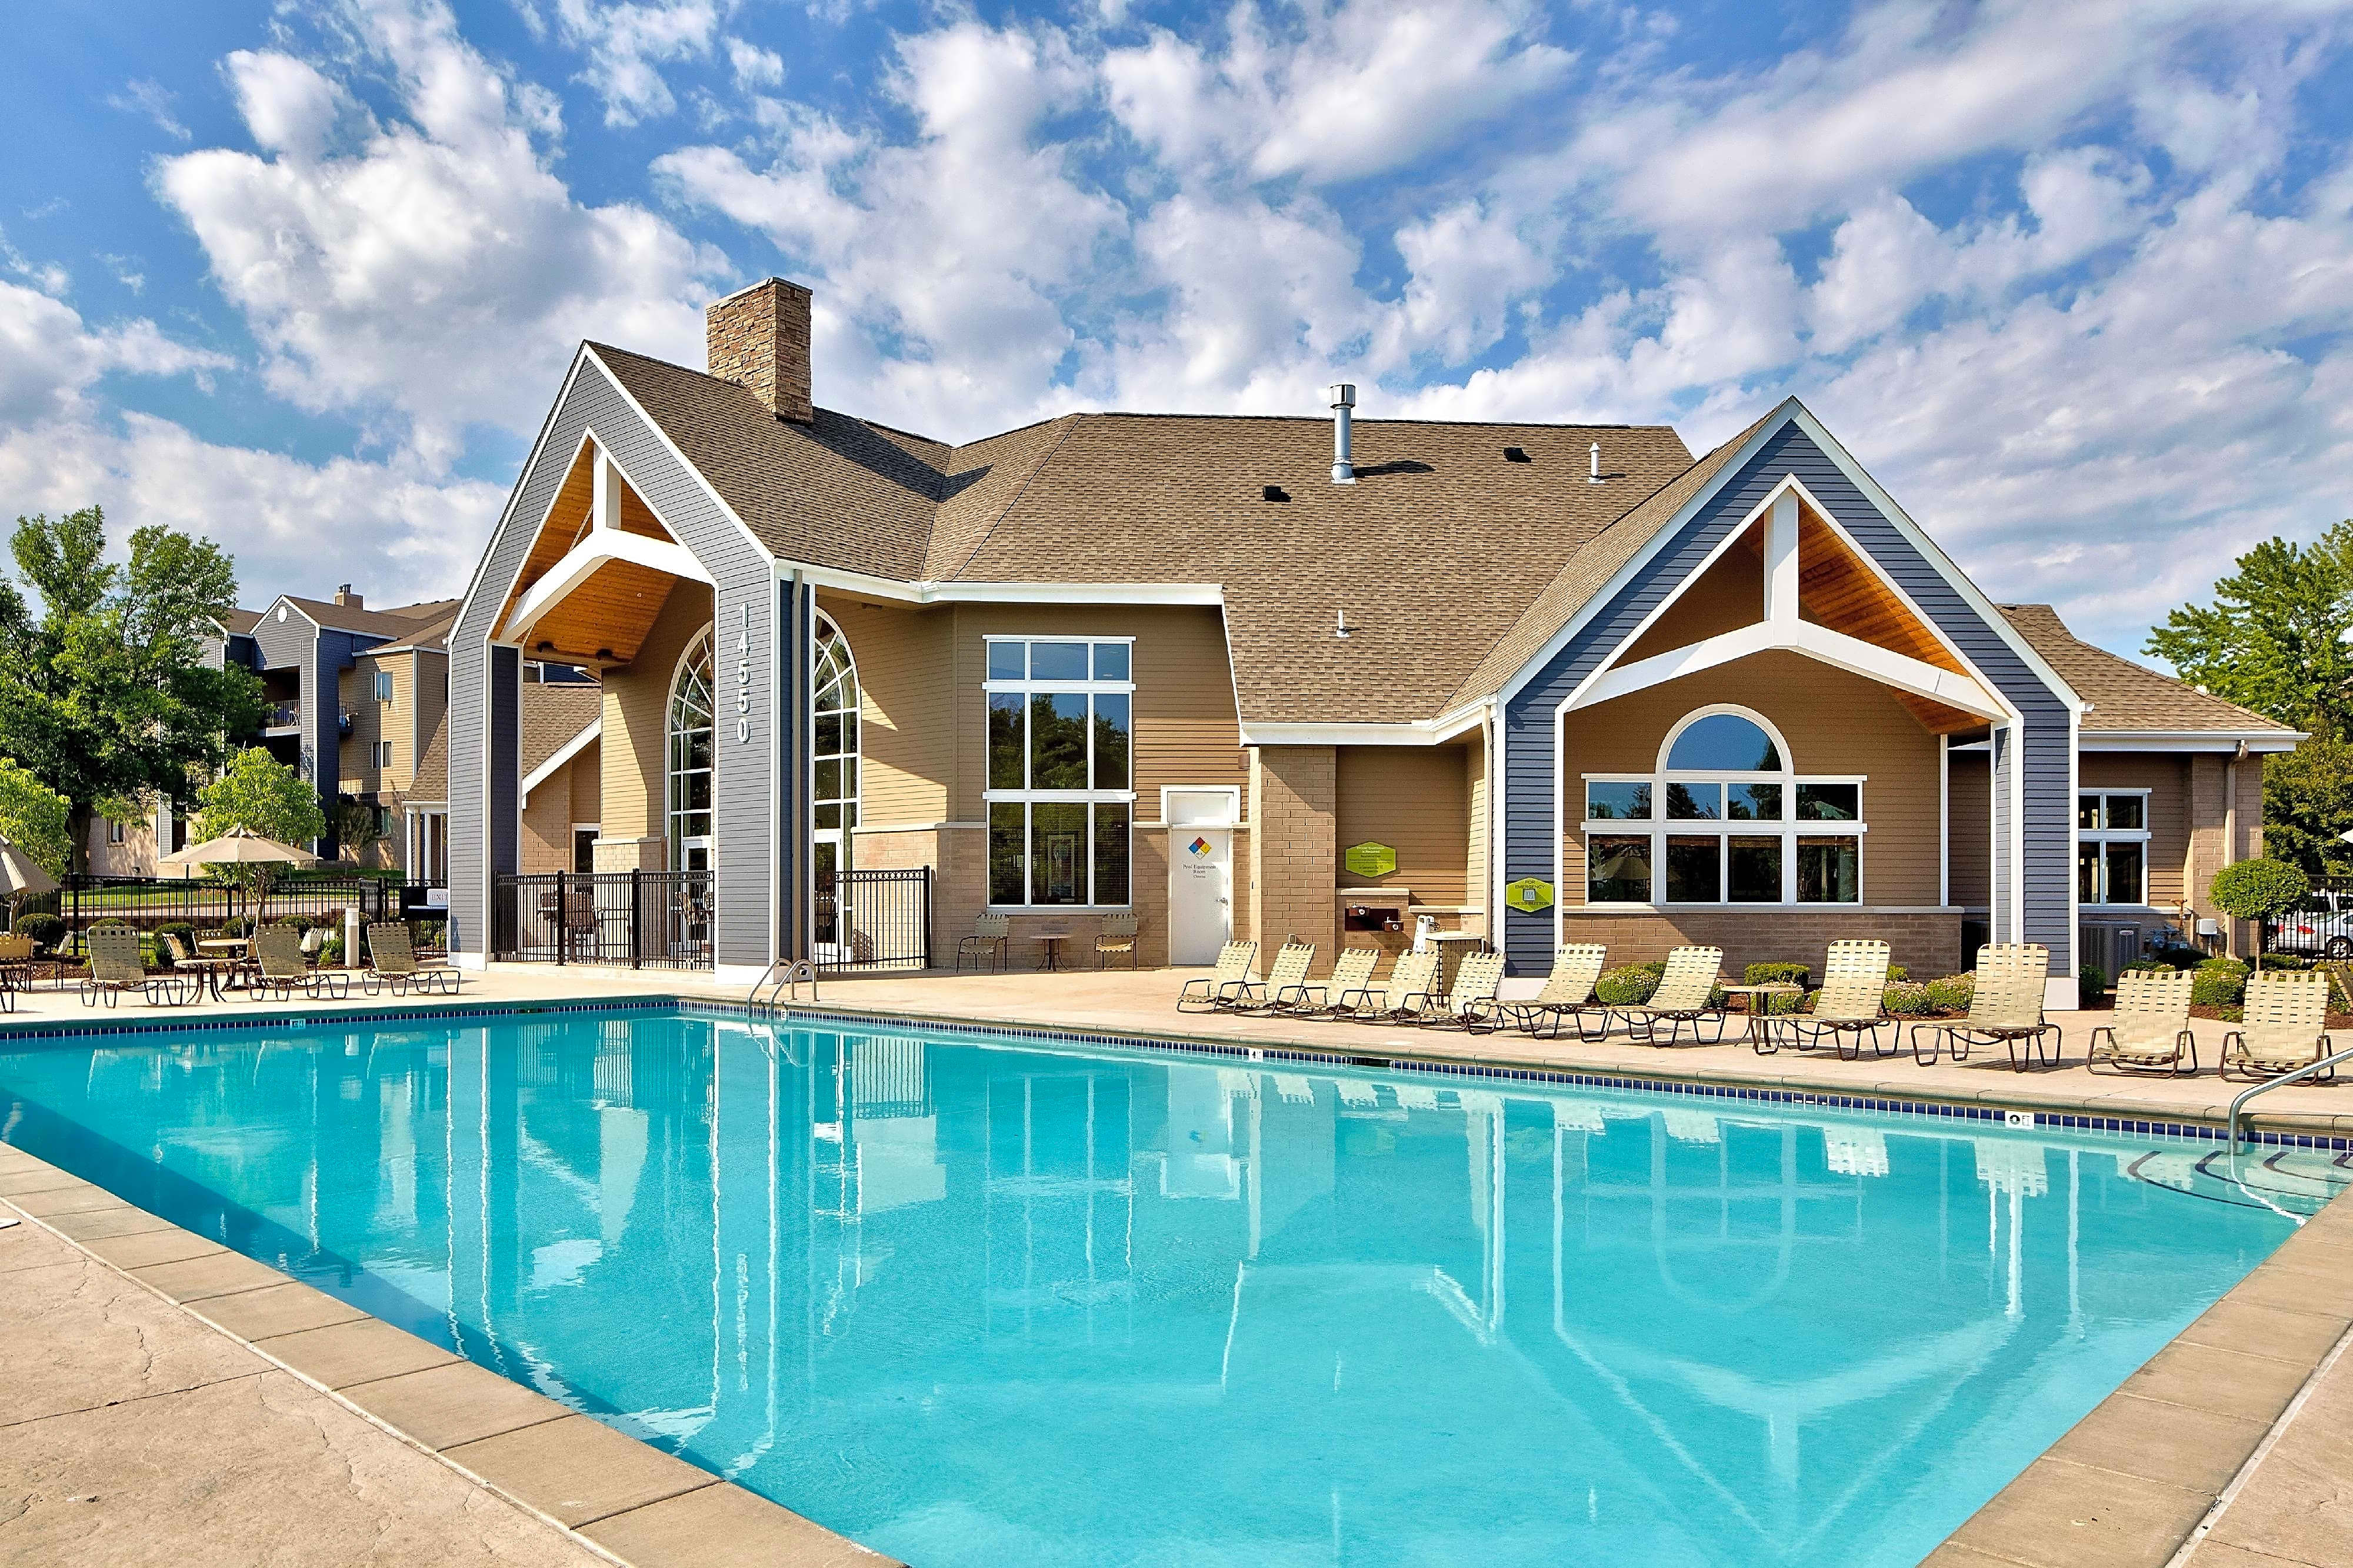 Park Place Apartments - Plymouth, MN 55447